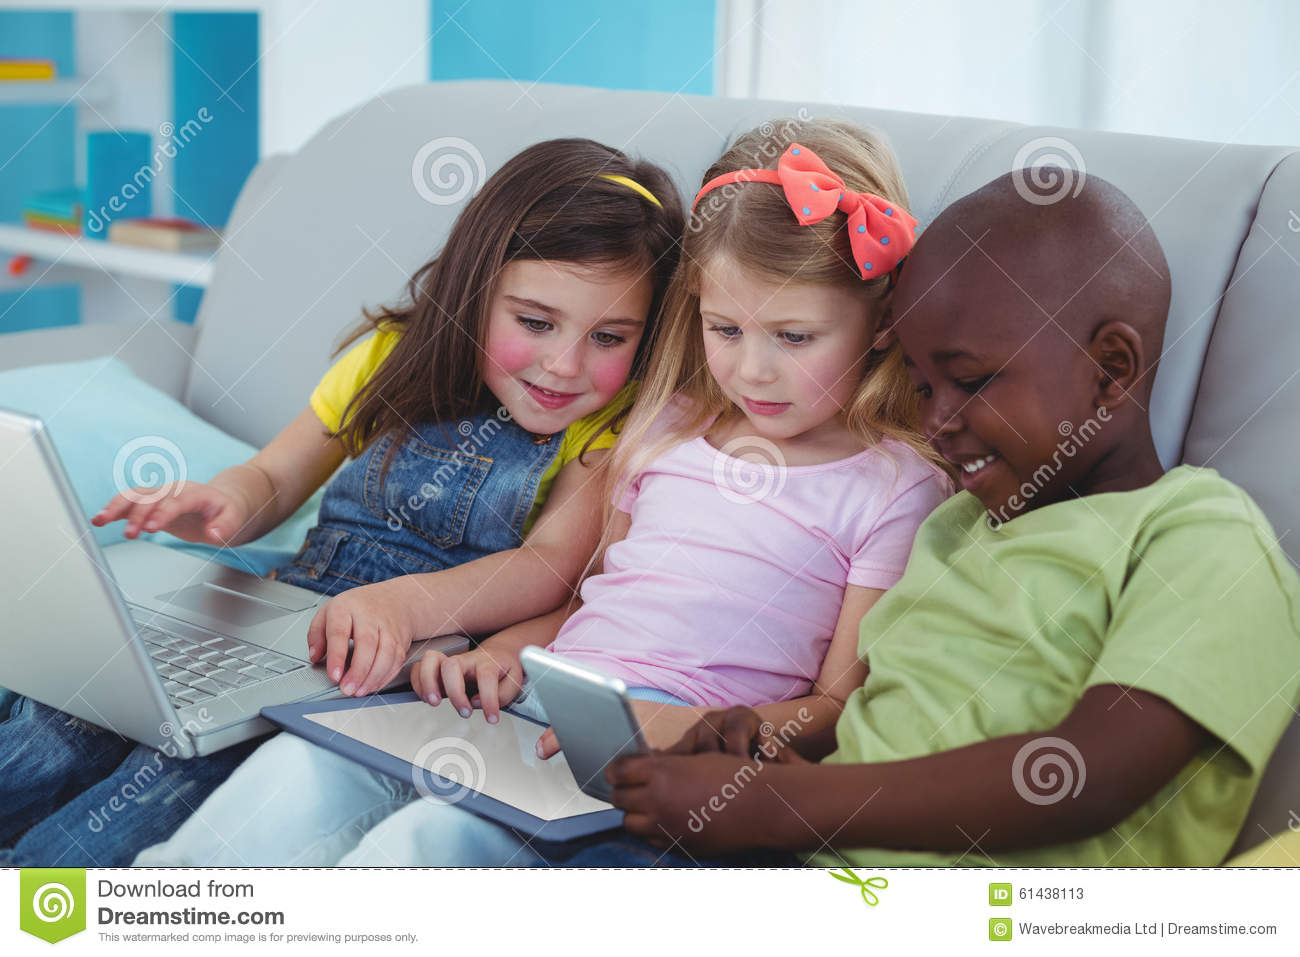 Happy kids sitting together with a tablet and laptop and phone on the